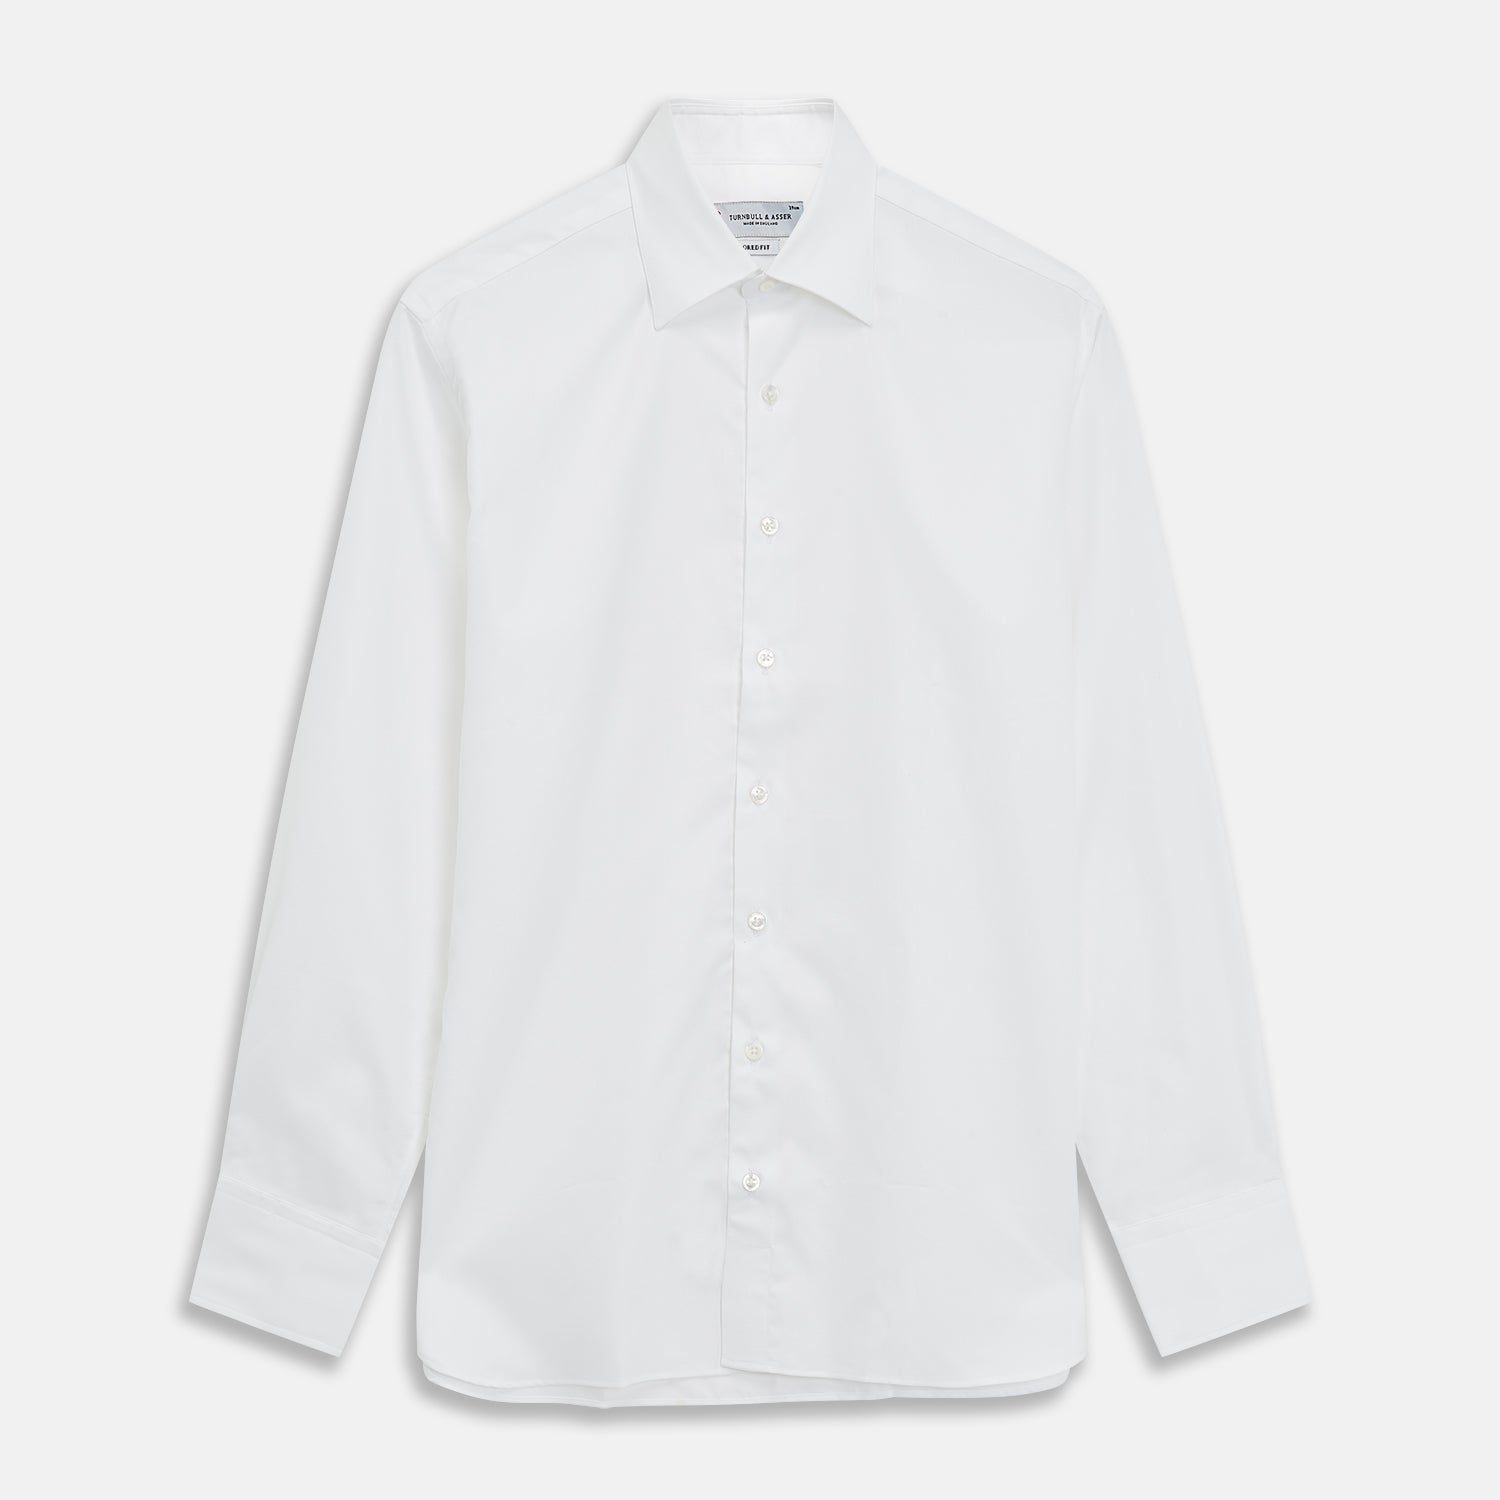 Plain White Oxford Tailored Fit Cotton Shirt with Bury Collar and 3-Button Cuffs